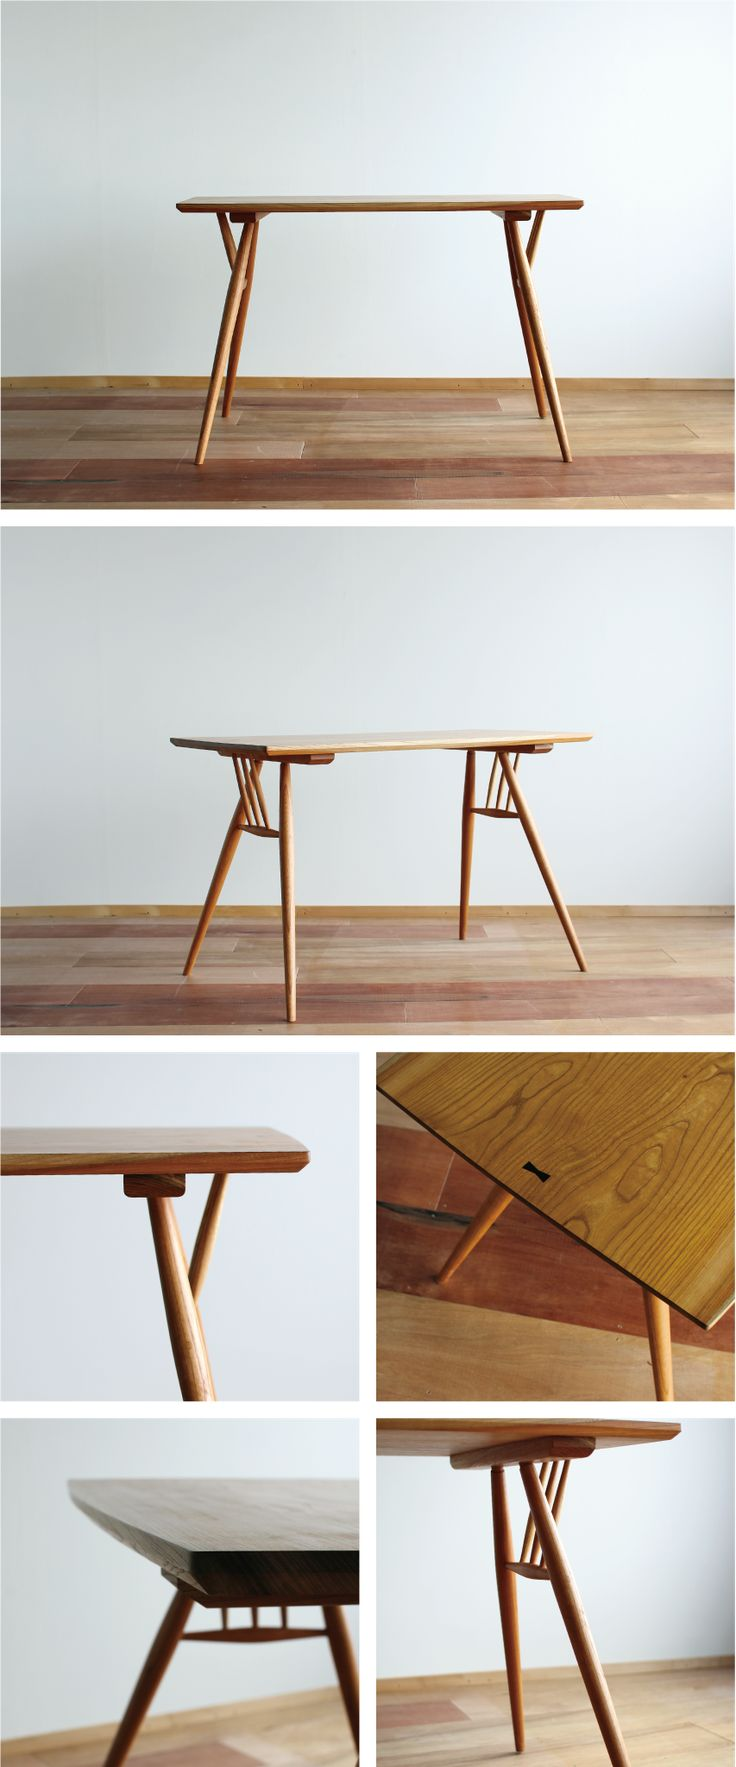 Dining tables gerrit industrial style rustic pine iron dining table - 593 Best Images About Furniture On Pinterest Teak Chairs And Industrial